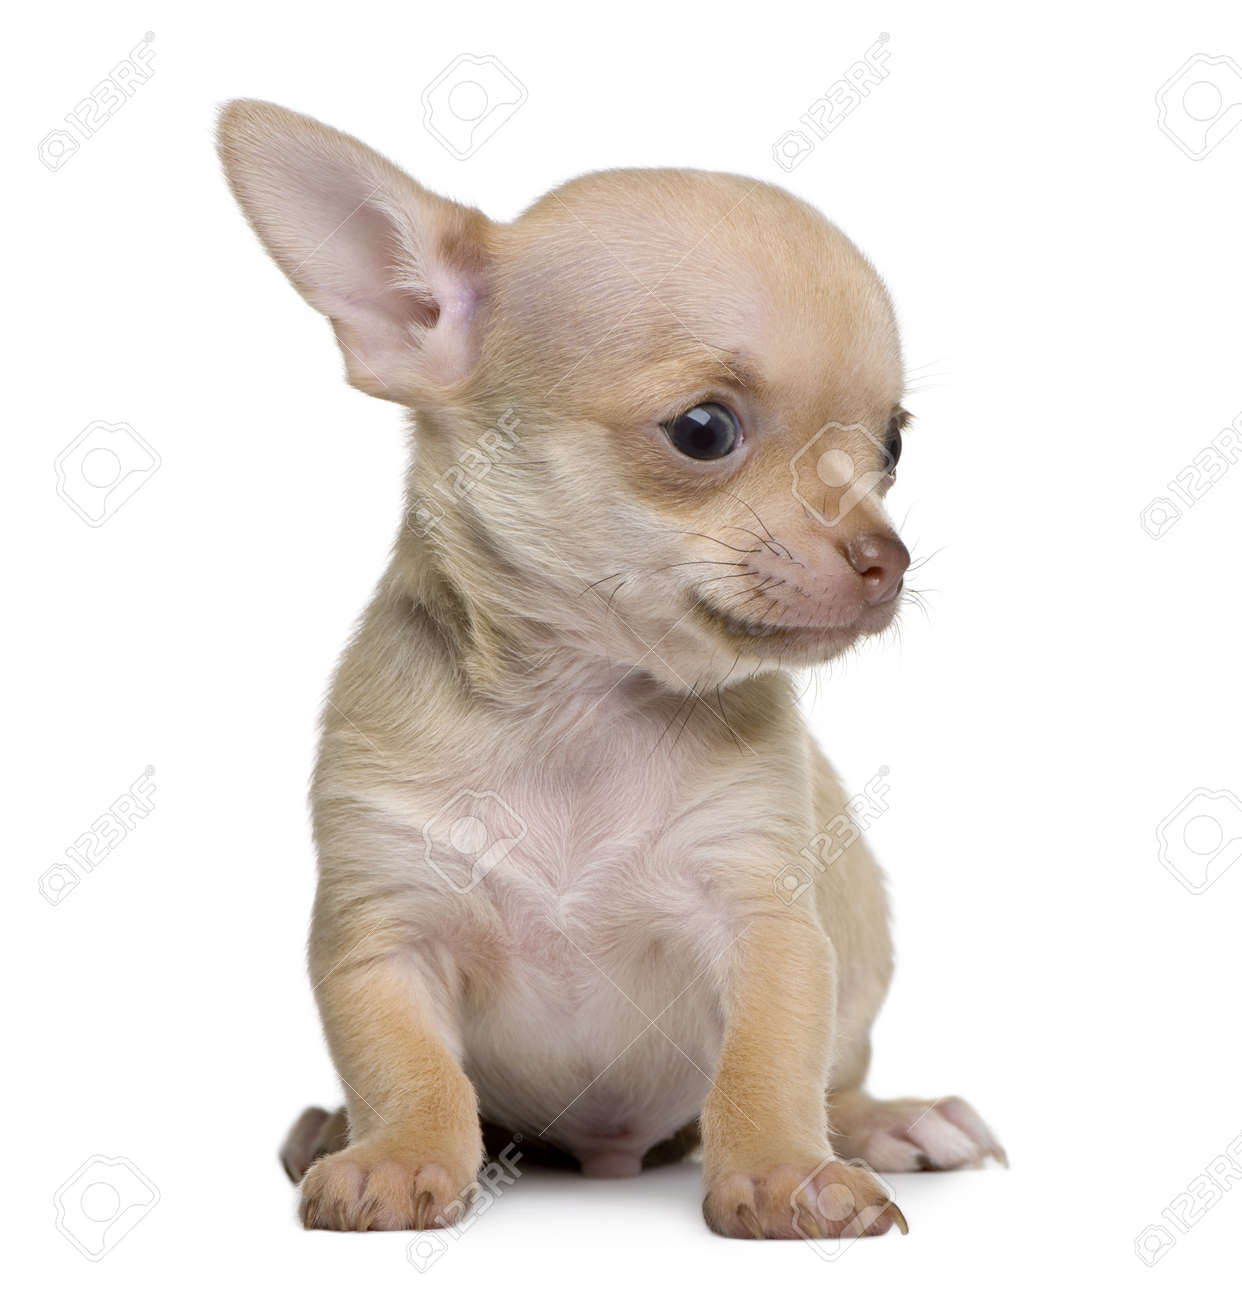 Chihuahua puppy, 8 weeks old, sitting in front of white background Stock Photo - 7127965